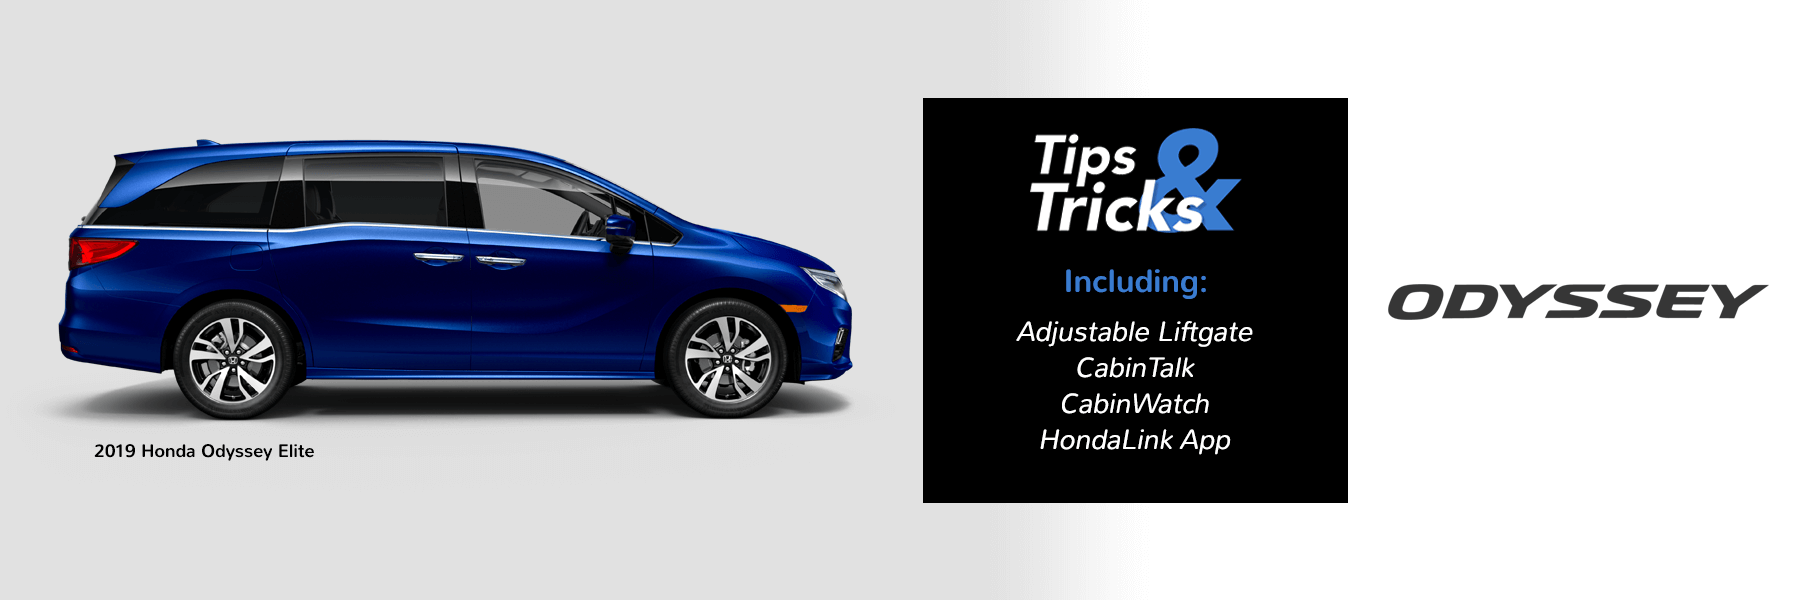 Honda Tips and Tricks 2019 Odyssey Slider